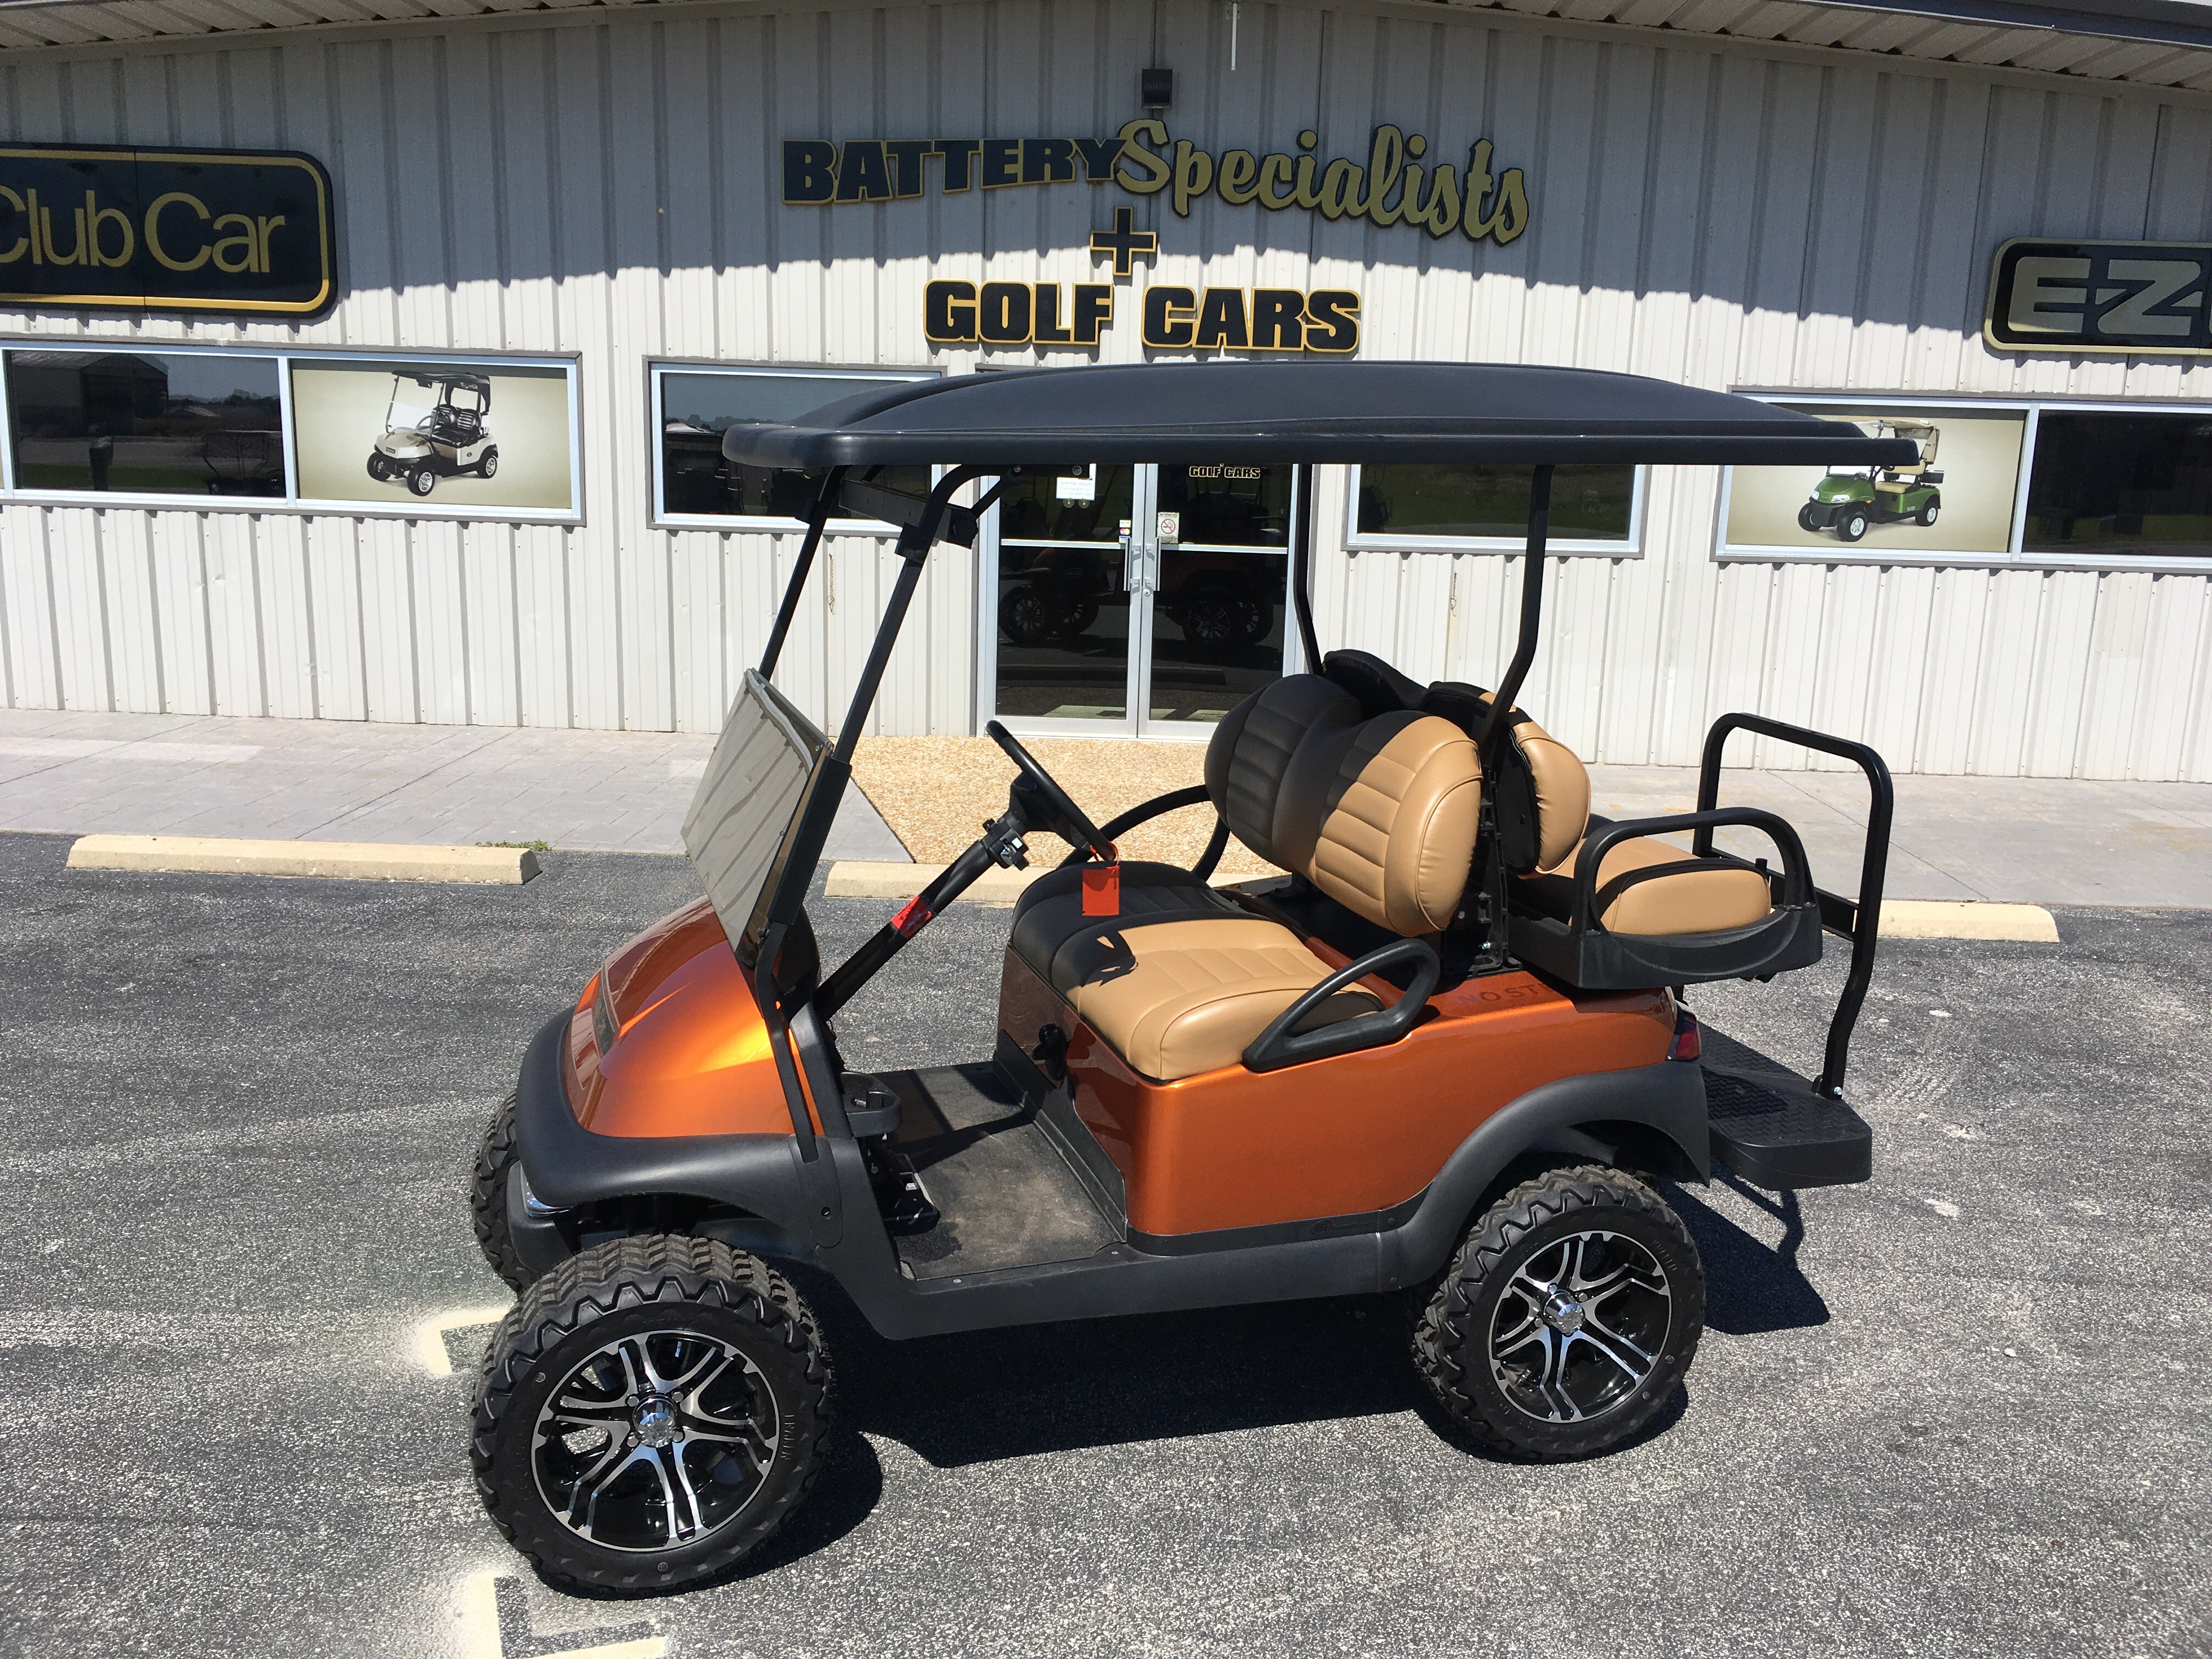 2015 Atomic Orange Club Car Precedent Gas Golf Car $7995